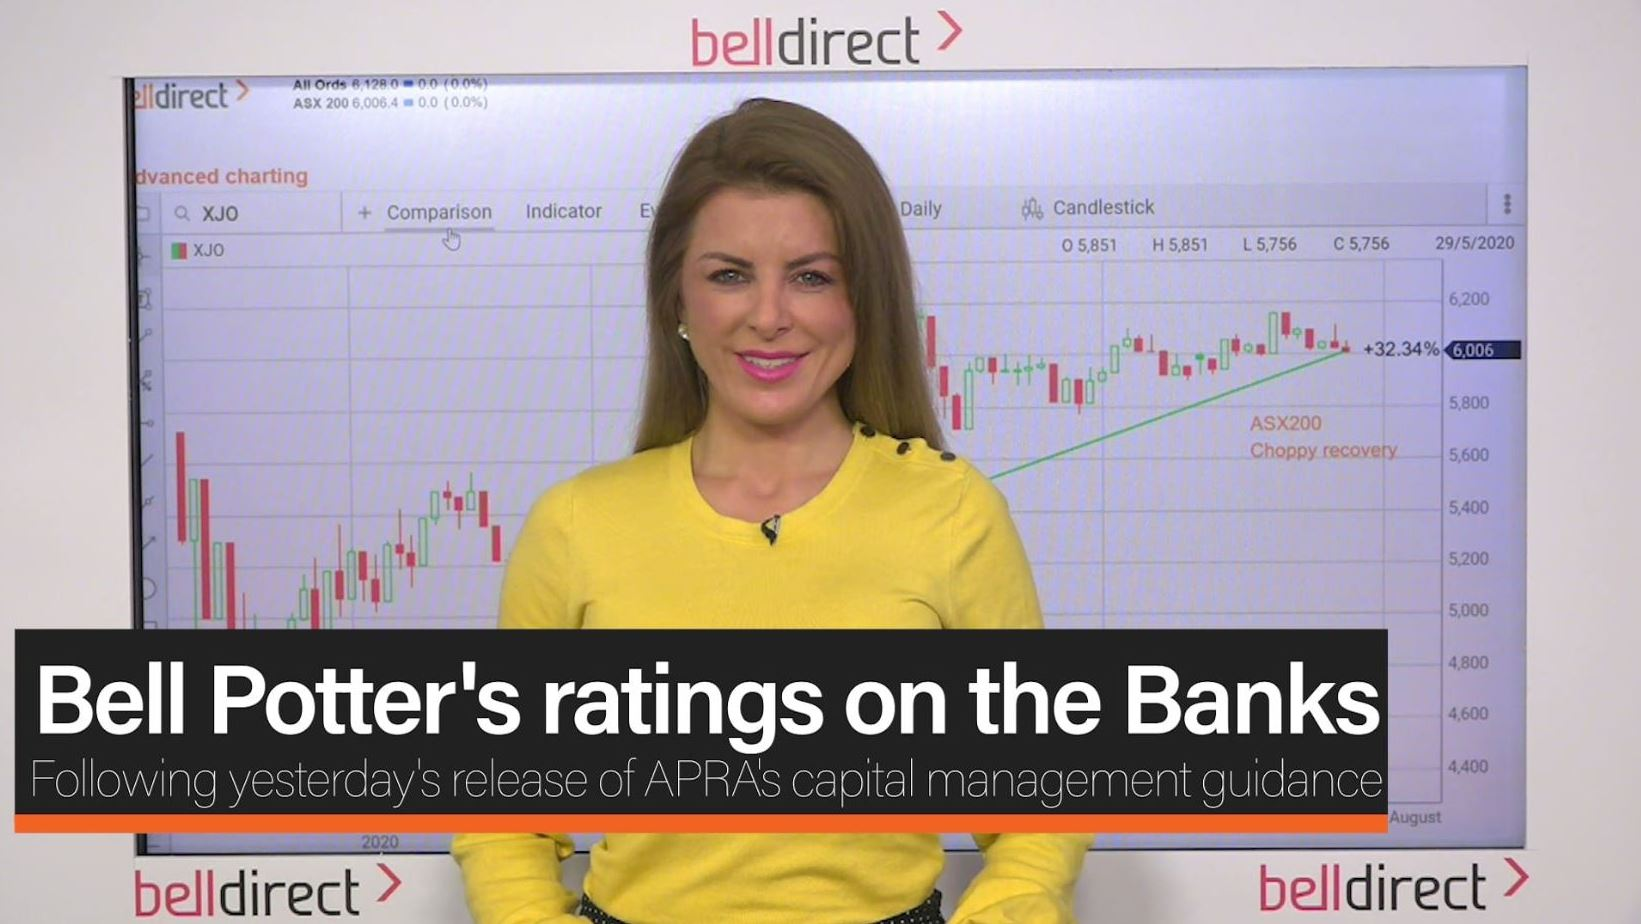 Bell Potter's ratings on the Banks